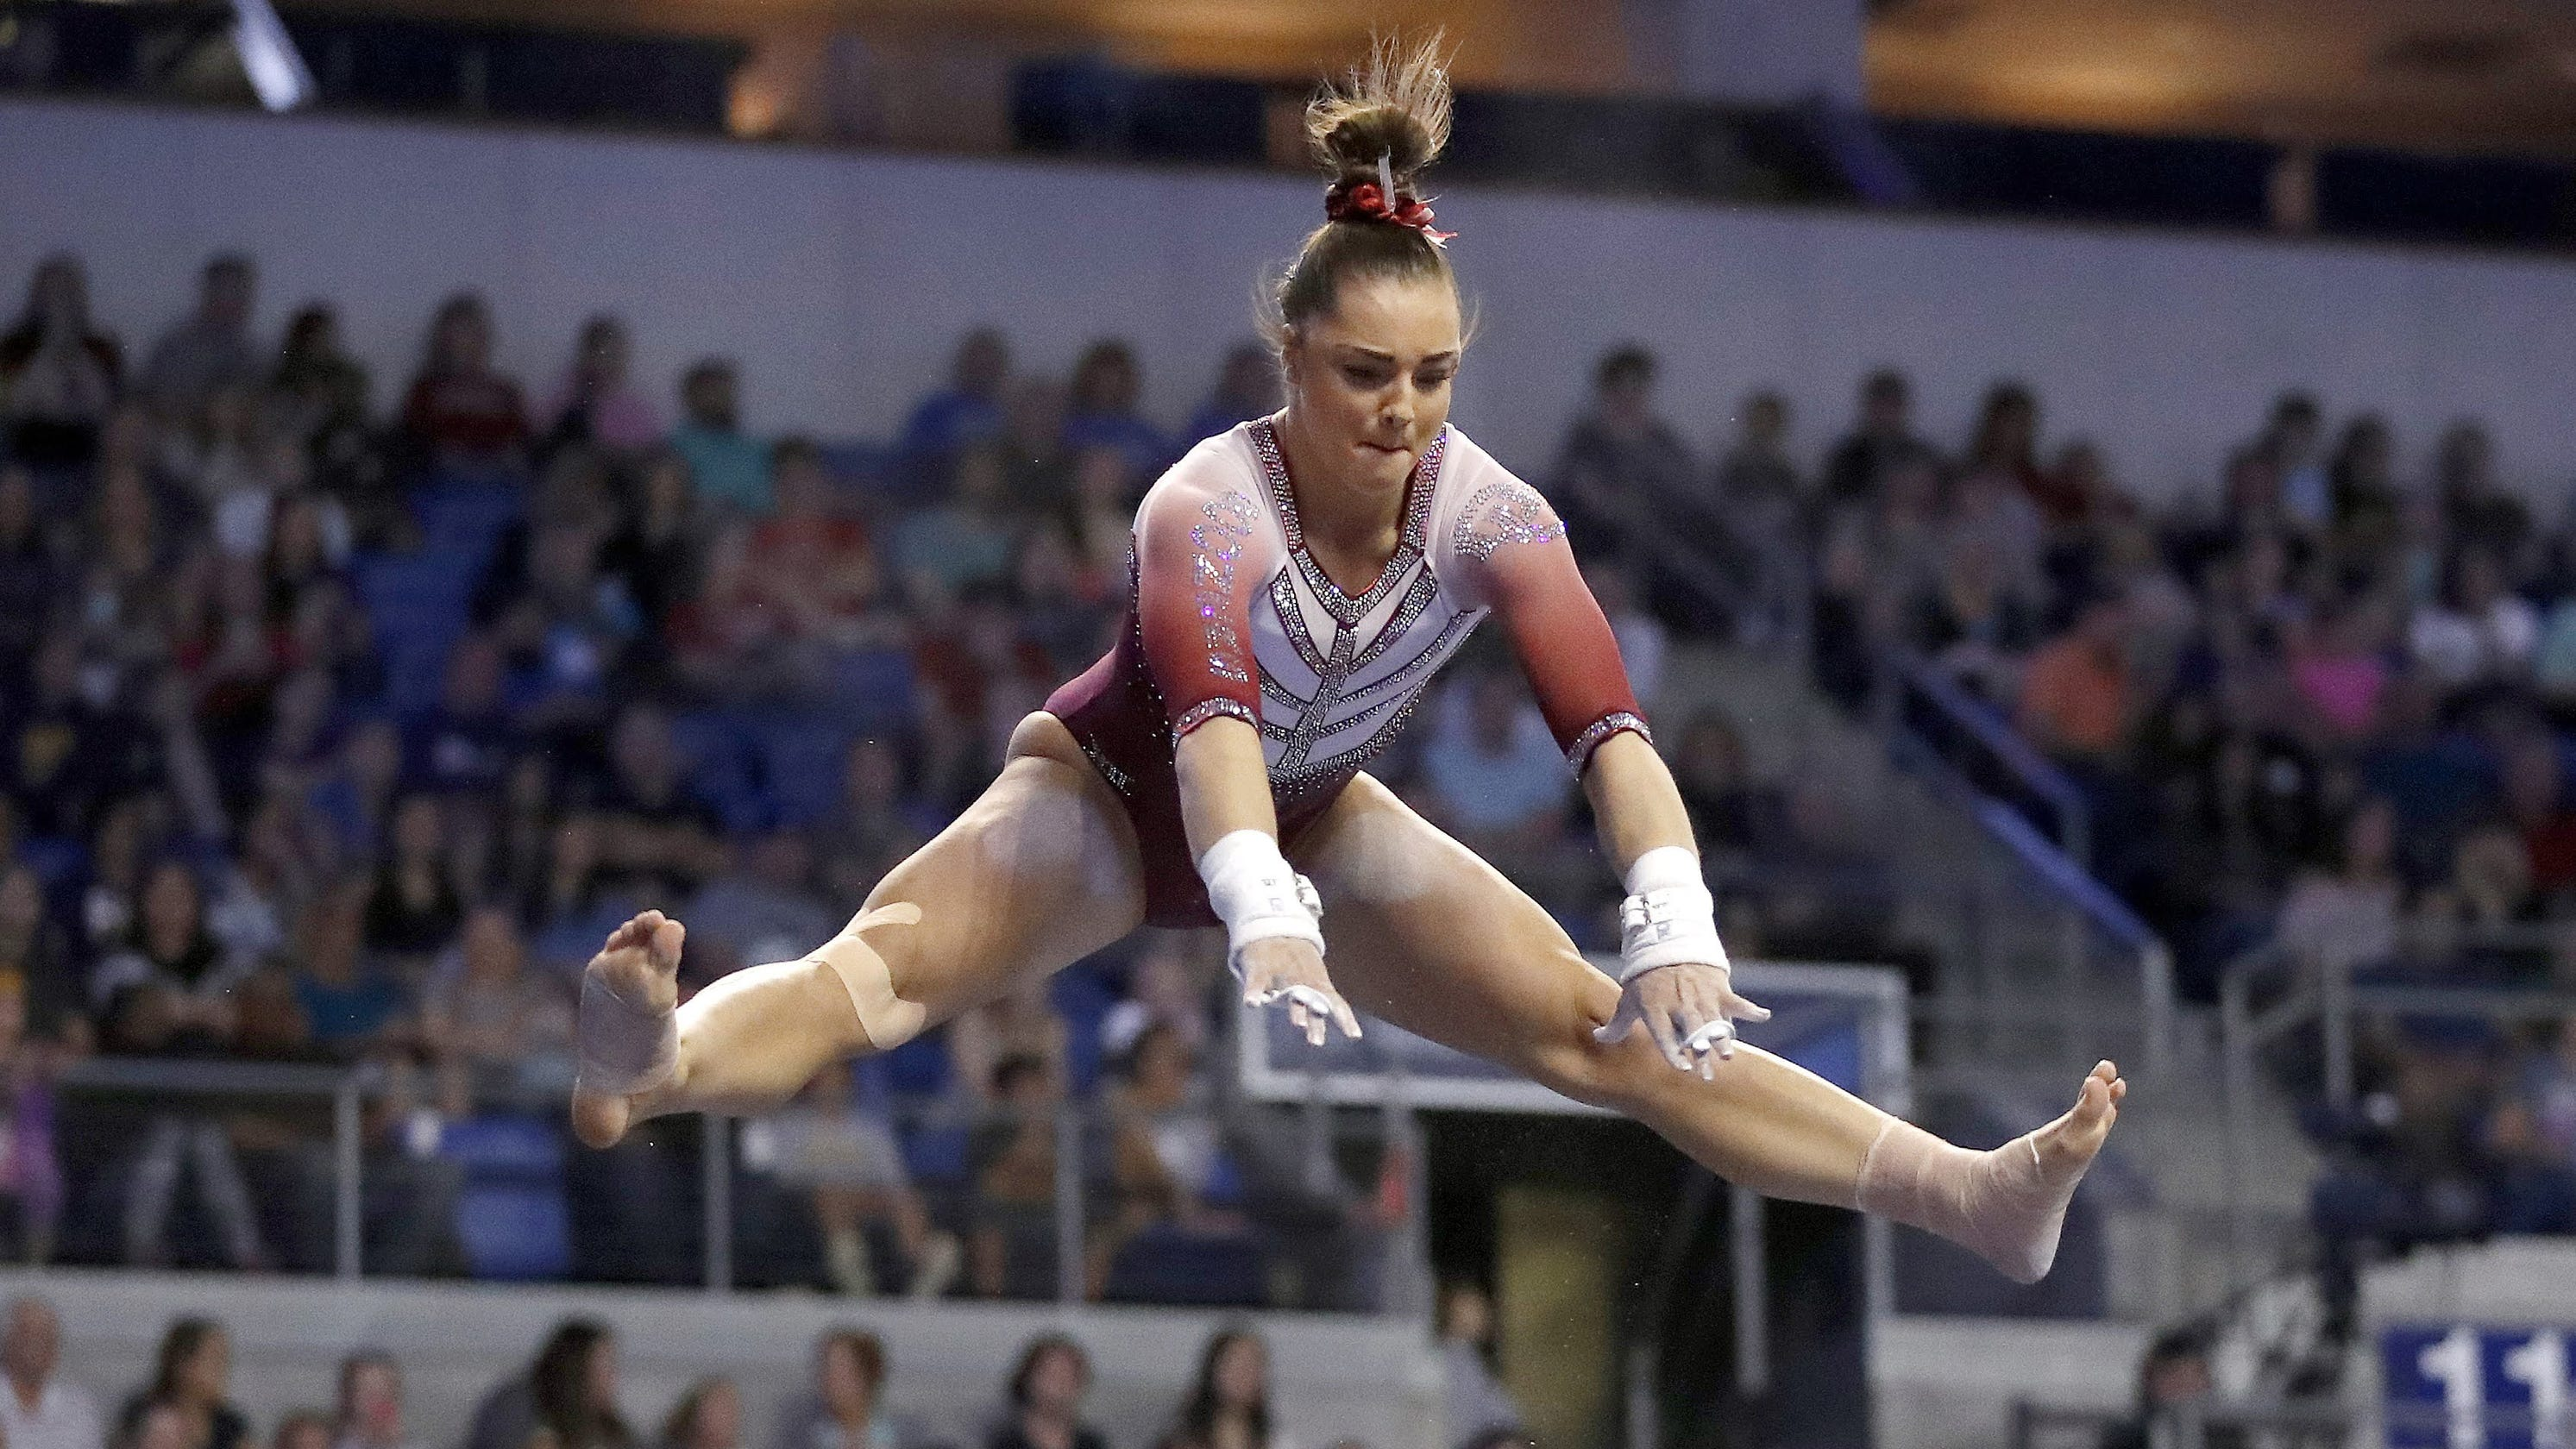 What it took to stop abuse by Larry Nassar